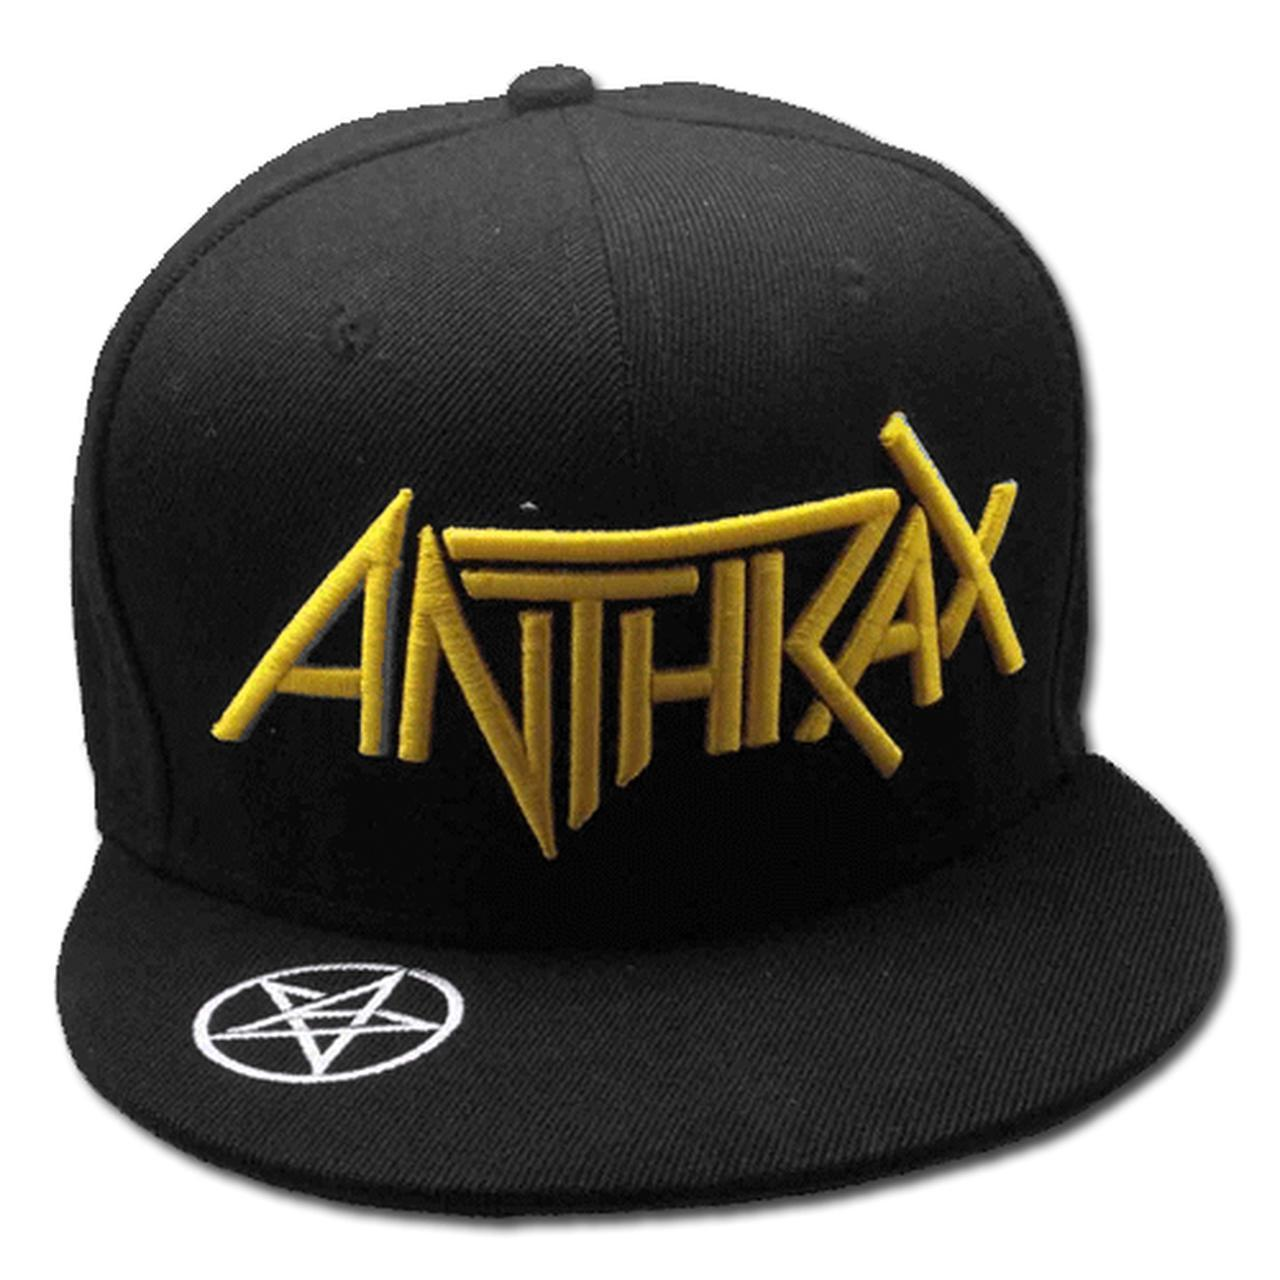 8373603211474963922-1280x1280-anthrax-snap-back-cap